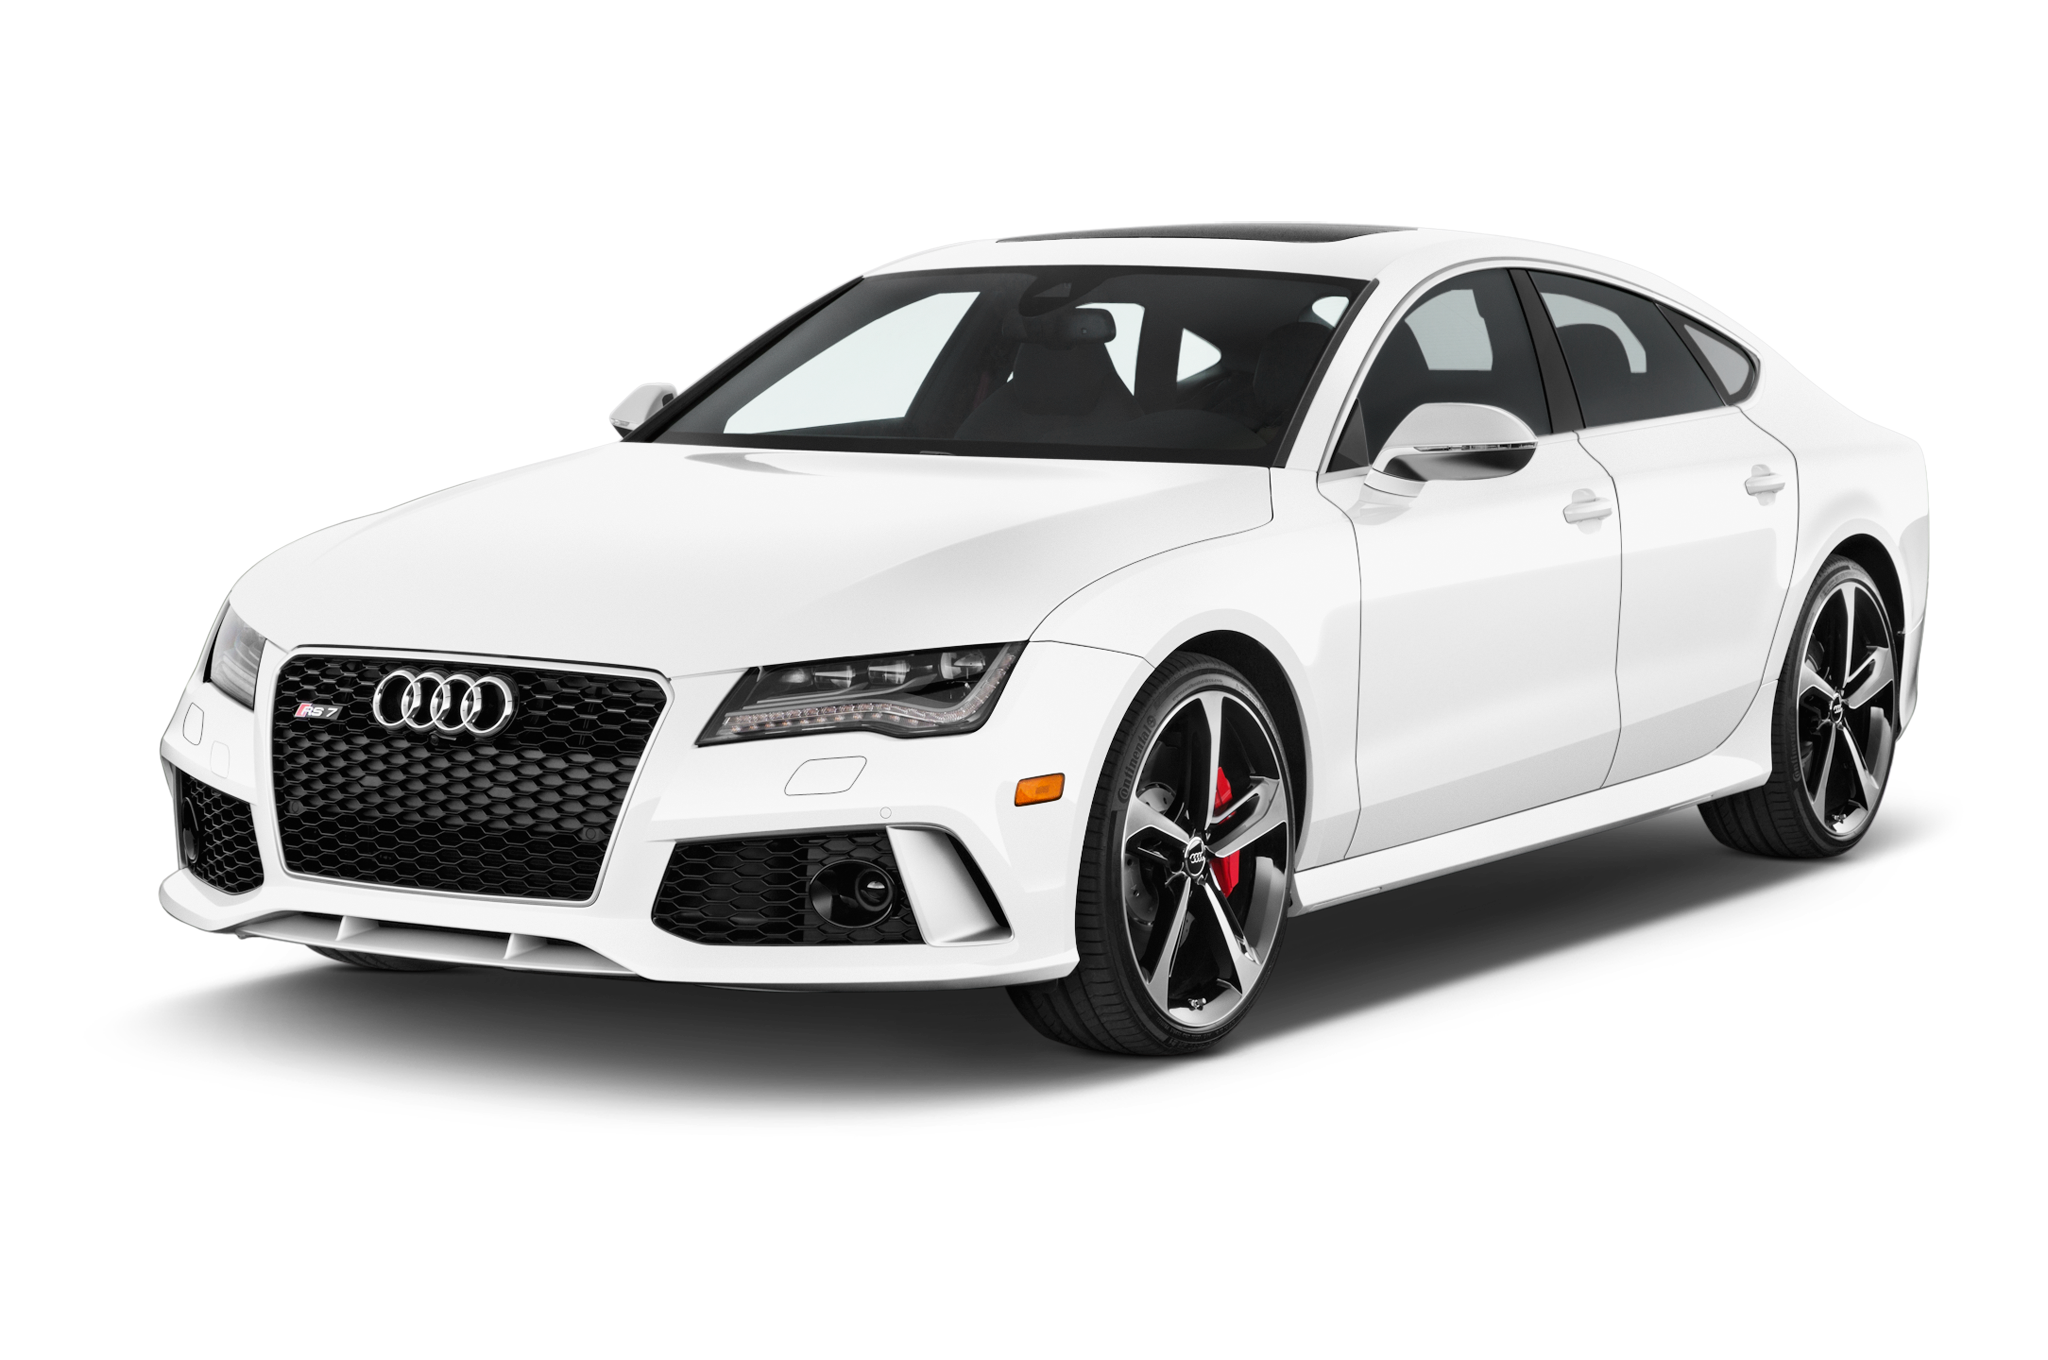 Why Do You Want an Audi? Let Me Tell You…